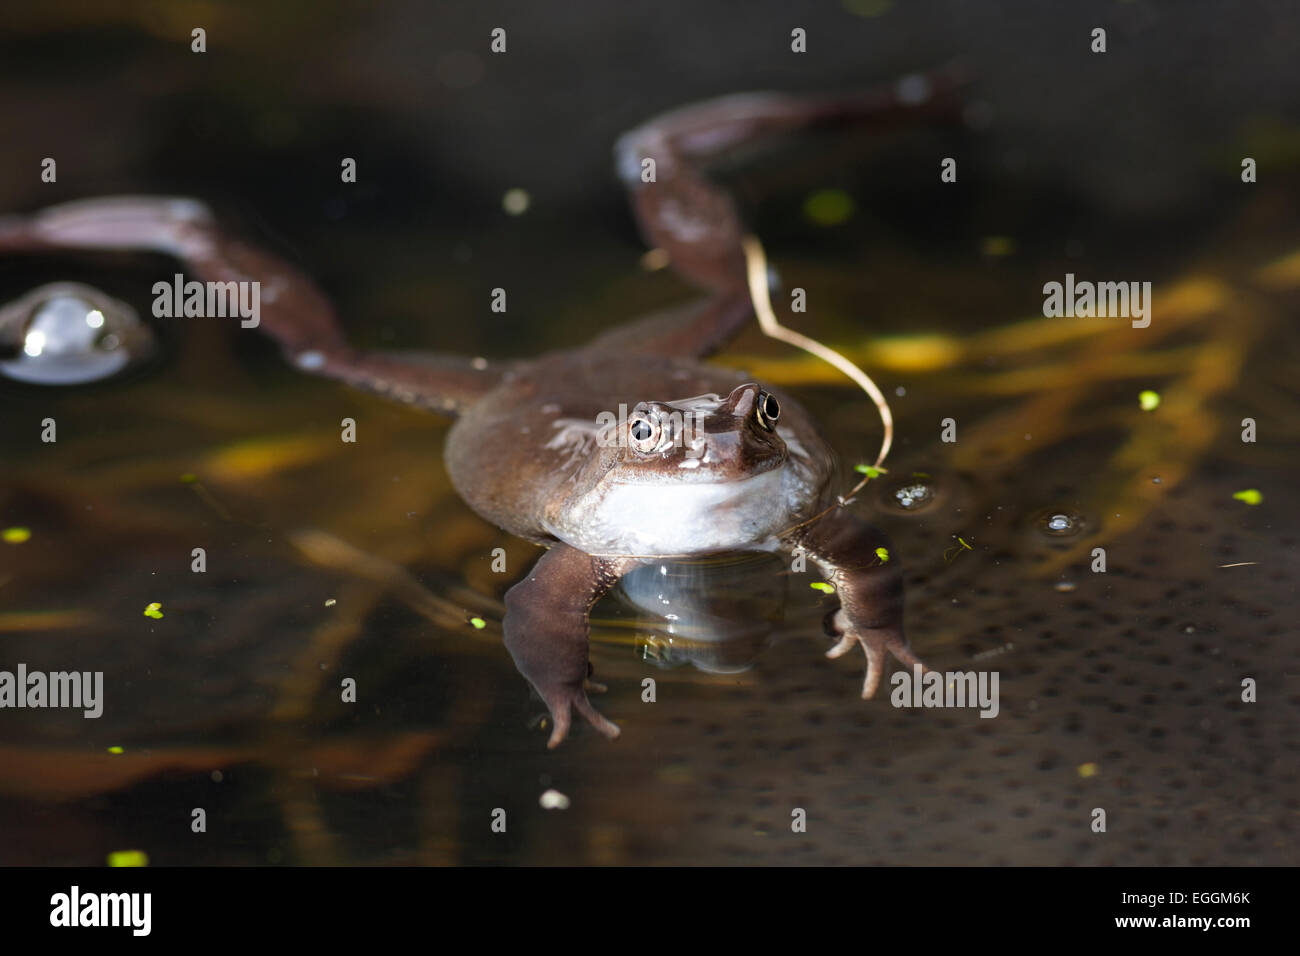 frog in pond guarding spawn - Stock Image